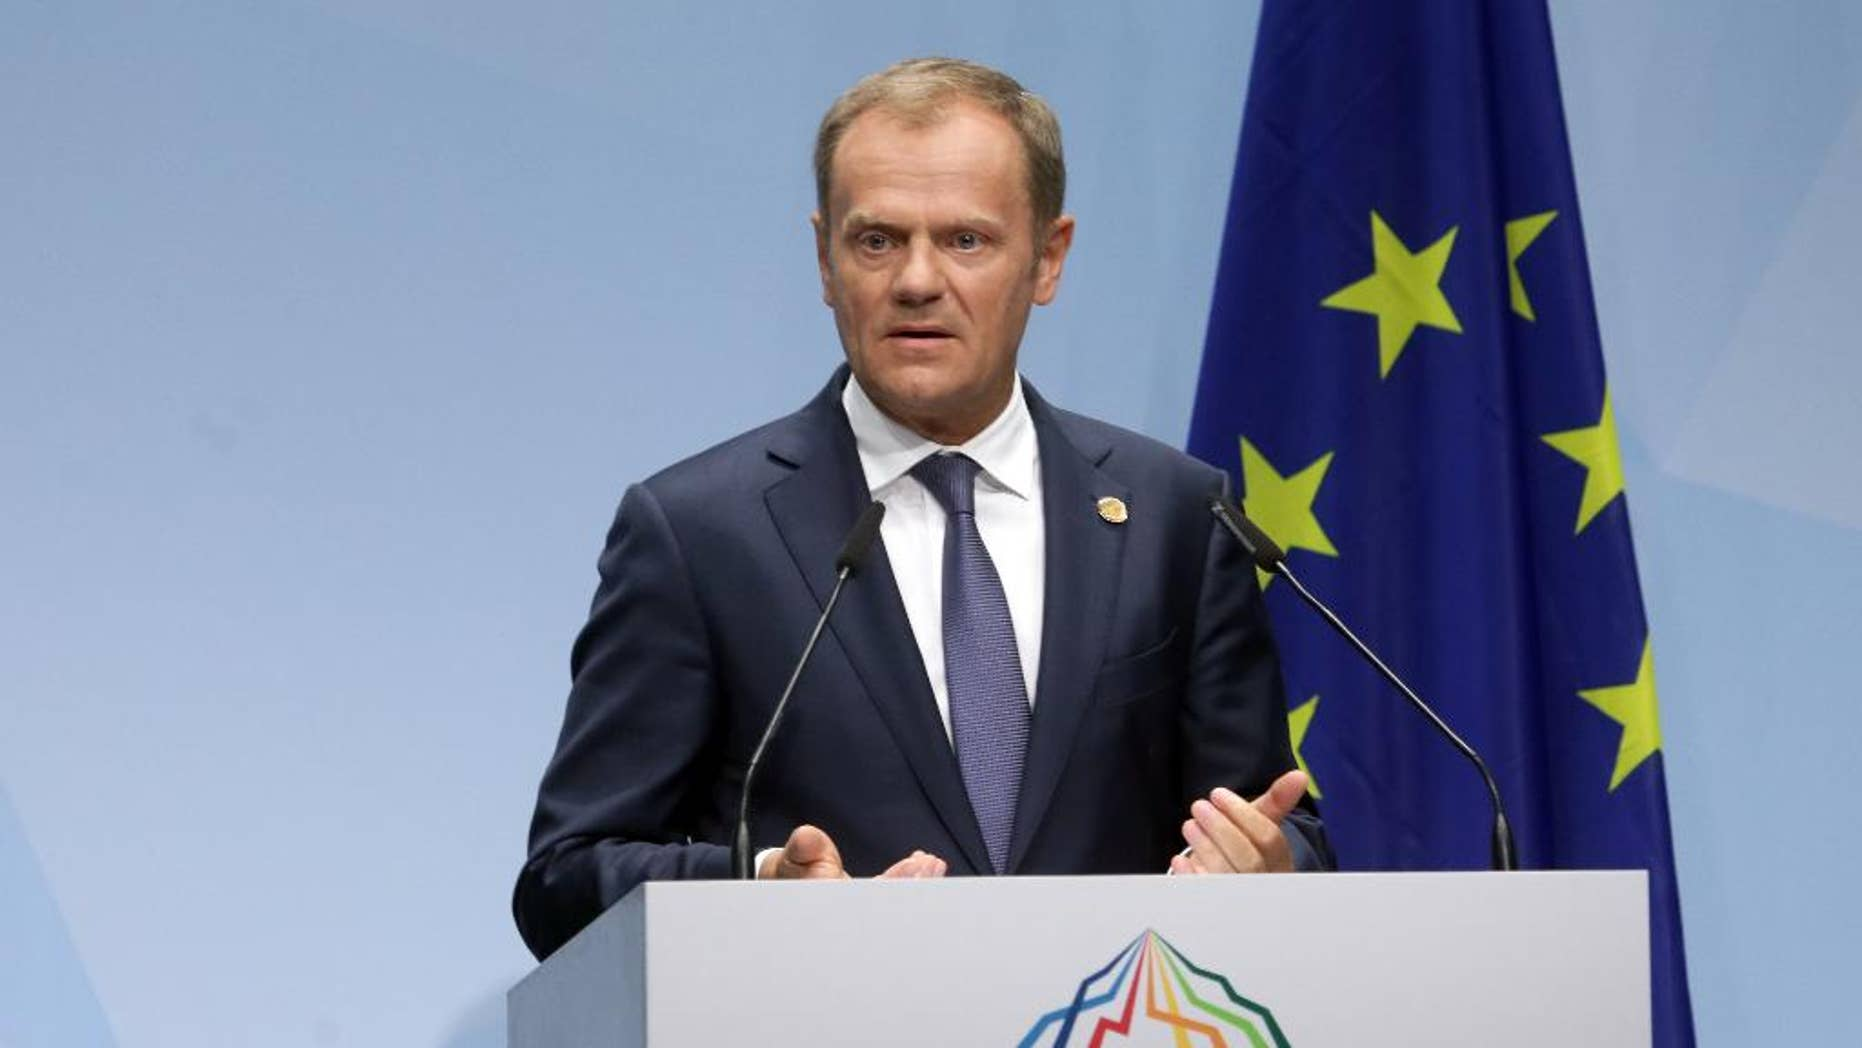 European Council President Donald Tusk speaks during a media conference at the G-7 summit at Schloss Elmau hotel near Garmisch-Partenkirchen, southern Germany, Sunday, June 7, 2015. The two-day summit will address such issues as climate change, poverty and the situation in Ukraine. (AP Photo/Virginia Mayo)